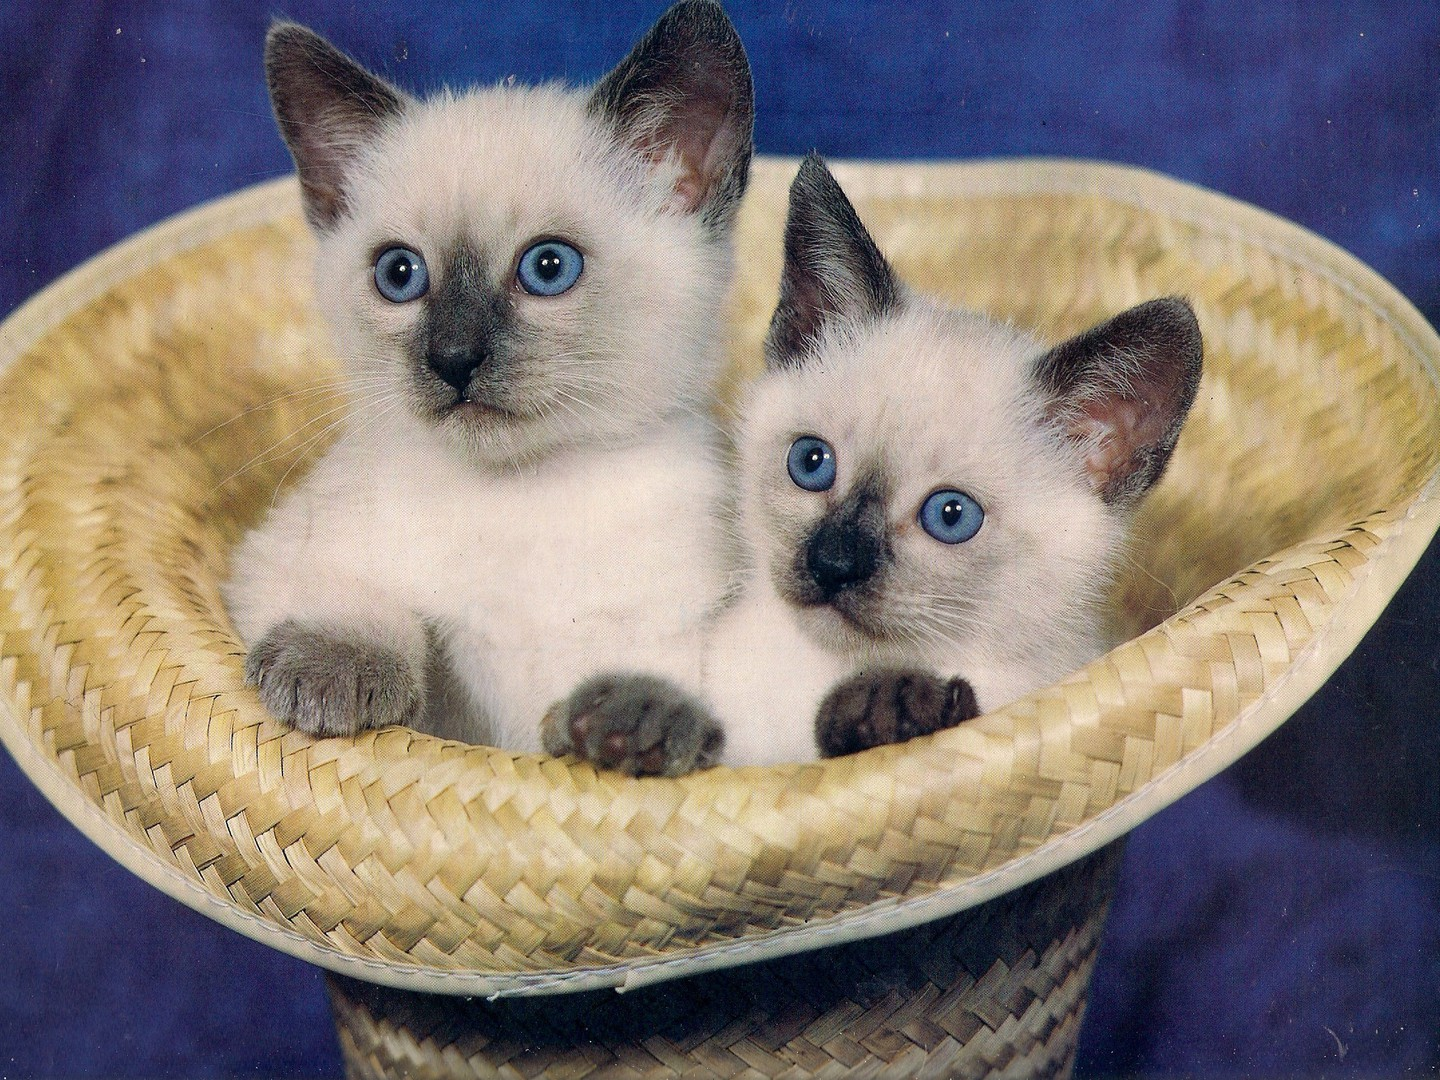 Cute Baby Pictures Desktop Wallpapers Siamese Twin Kittens Wallpaper Allwallpaper In 1768